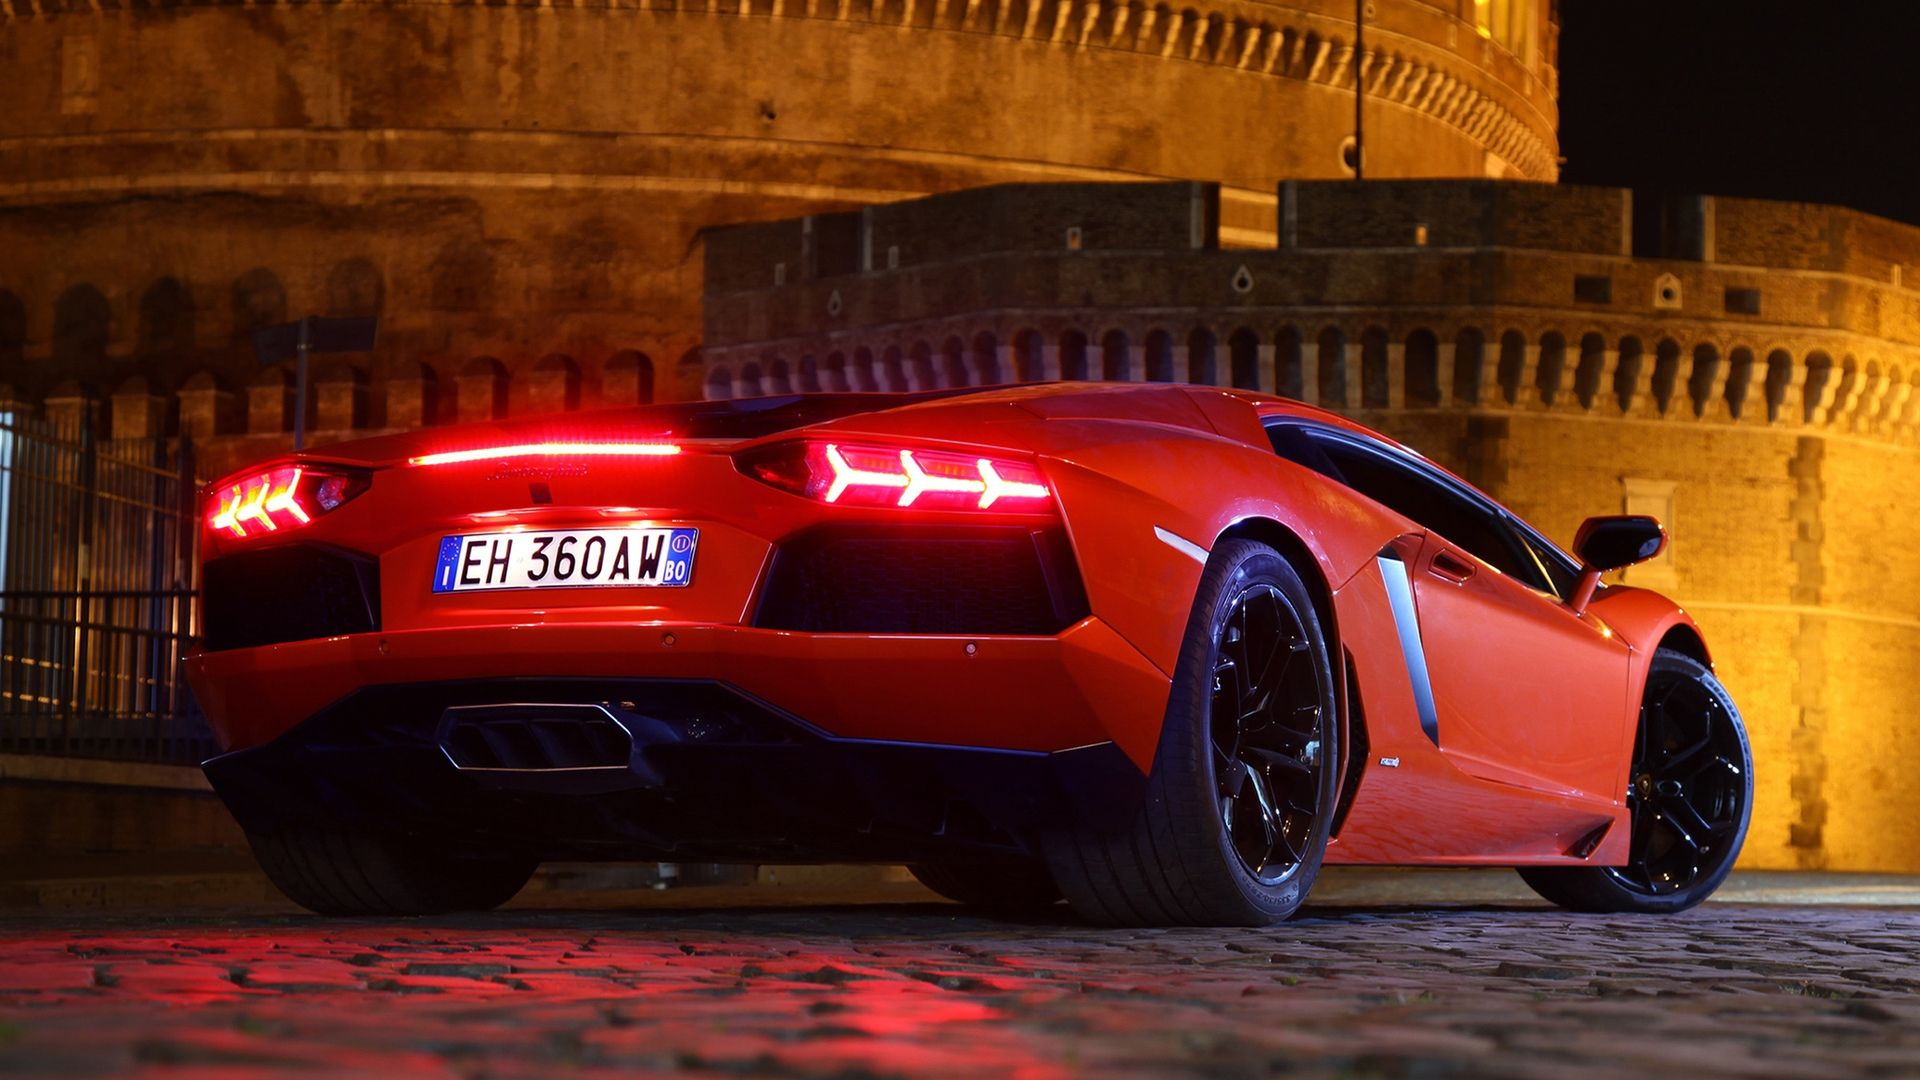 cars full hd backgrounds 1080p | wallpaper.wiki